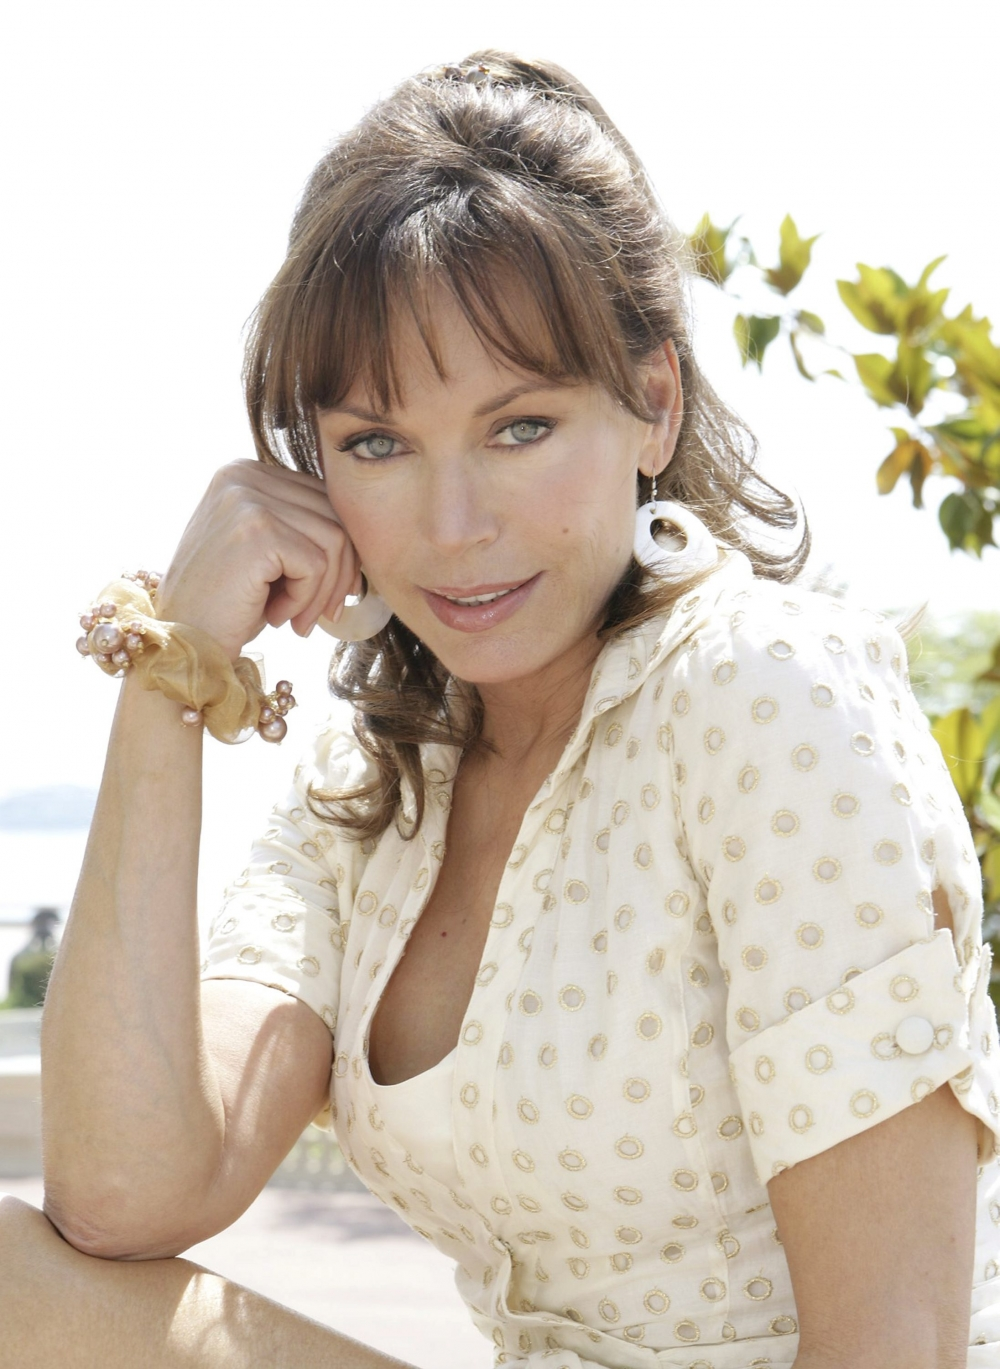 049467697_Lesley_AnneDown_UnknownPS6_122_586lo,